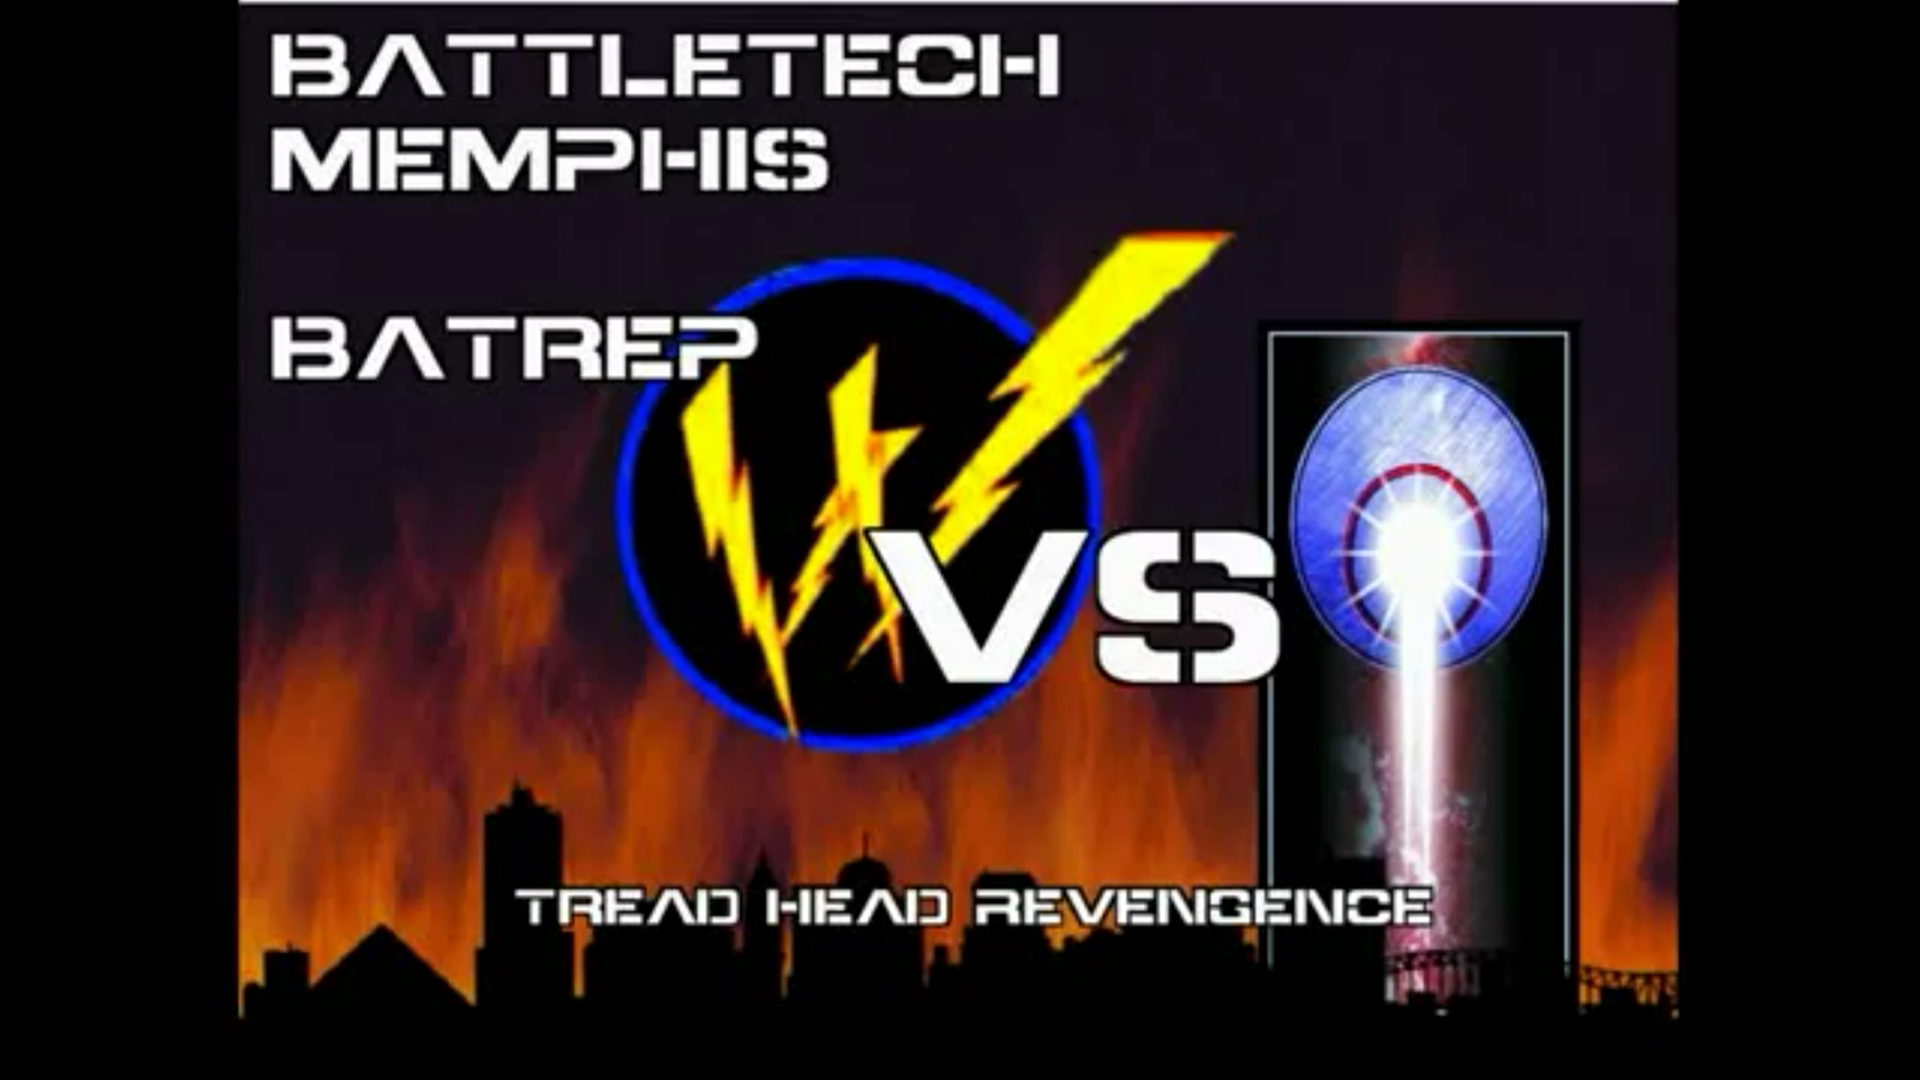 #5 Group W vs. Comstar Fight 2